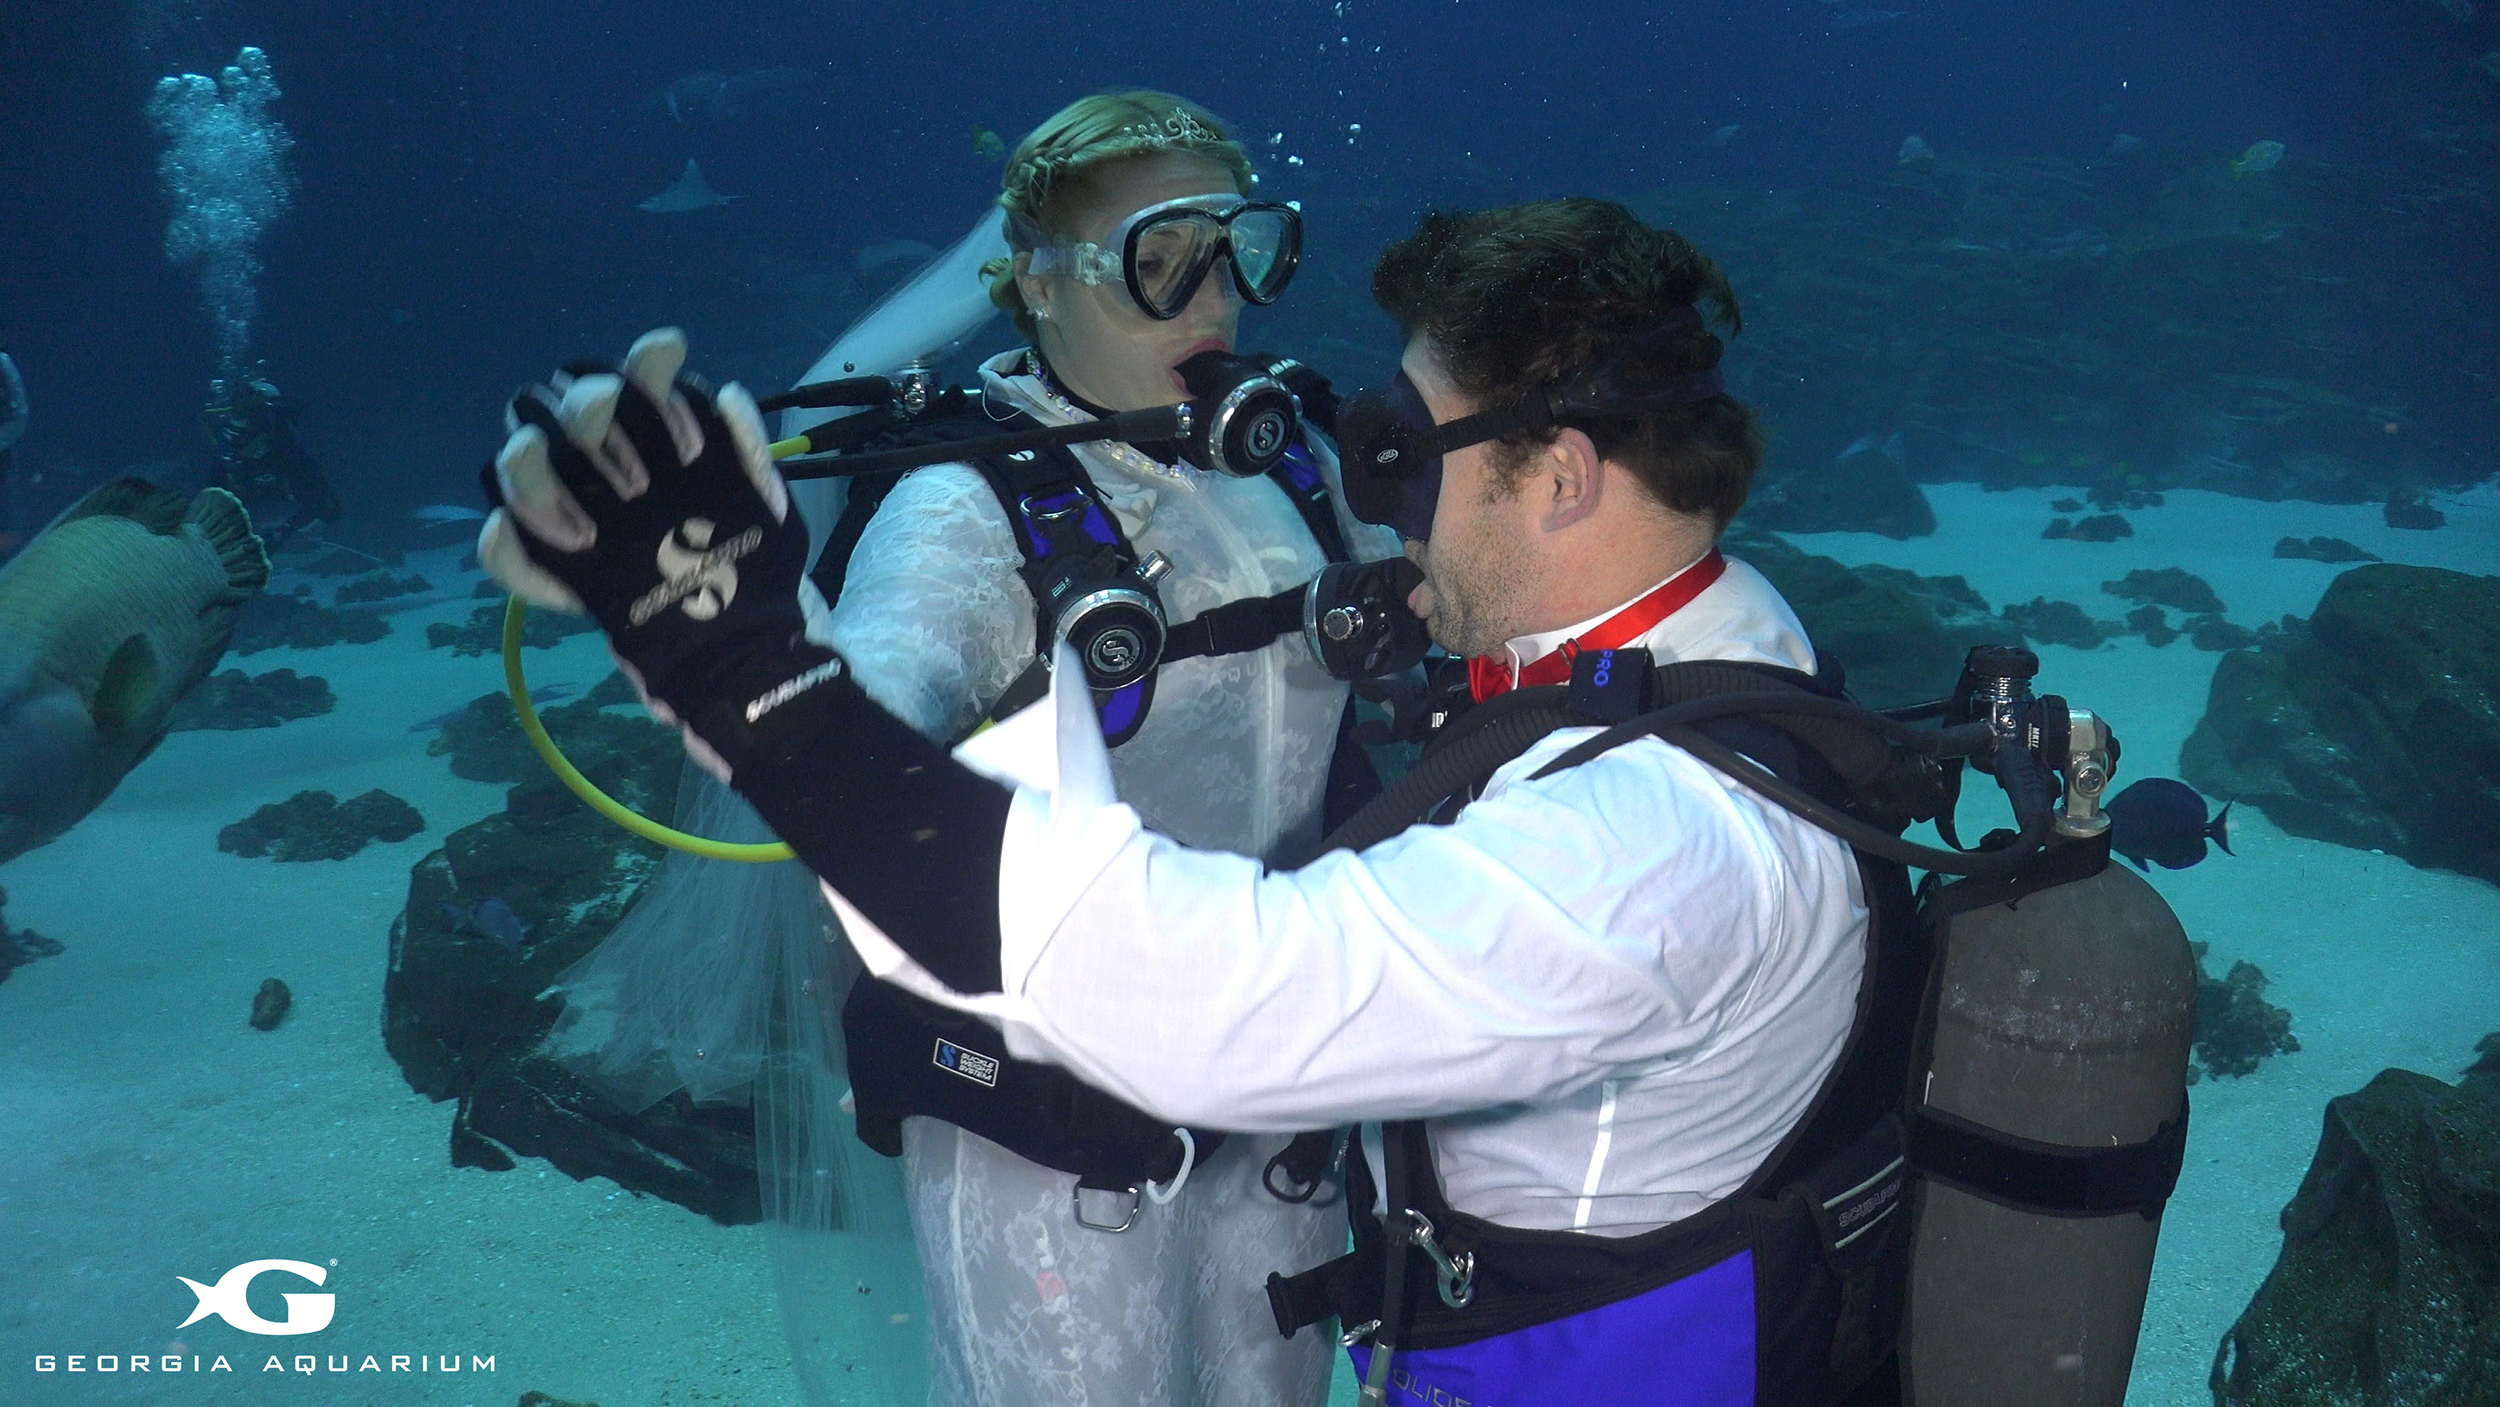 Couple gets married in underwater wedding ceremony at for Plenty of fish atlanta ga